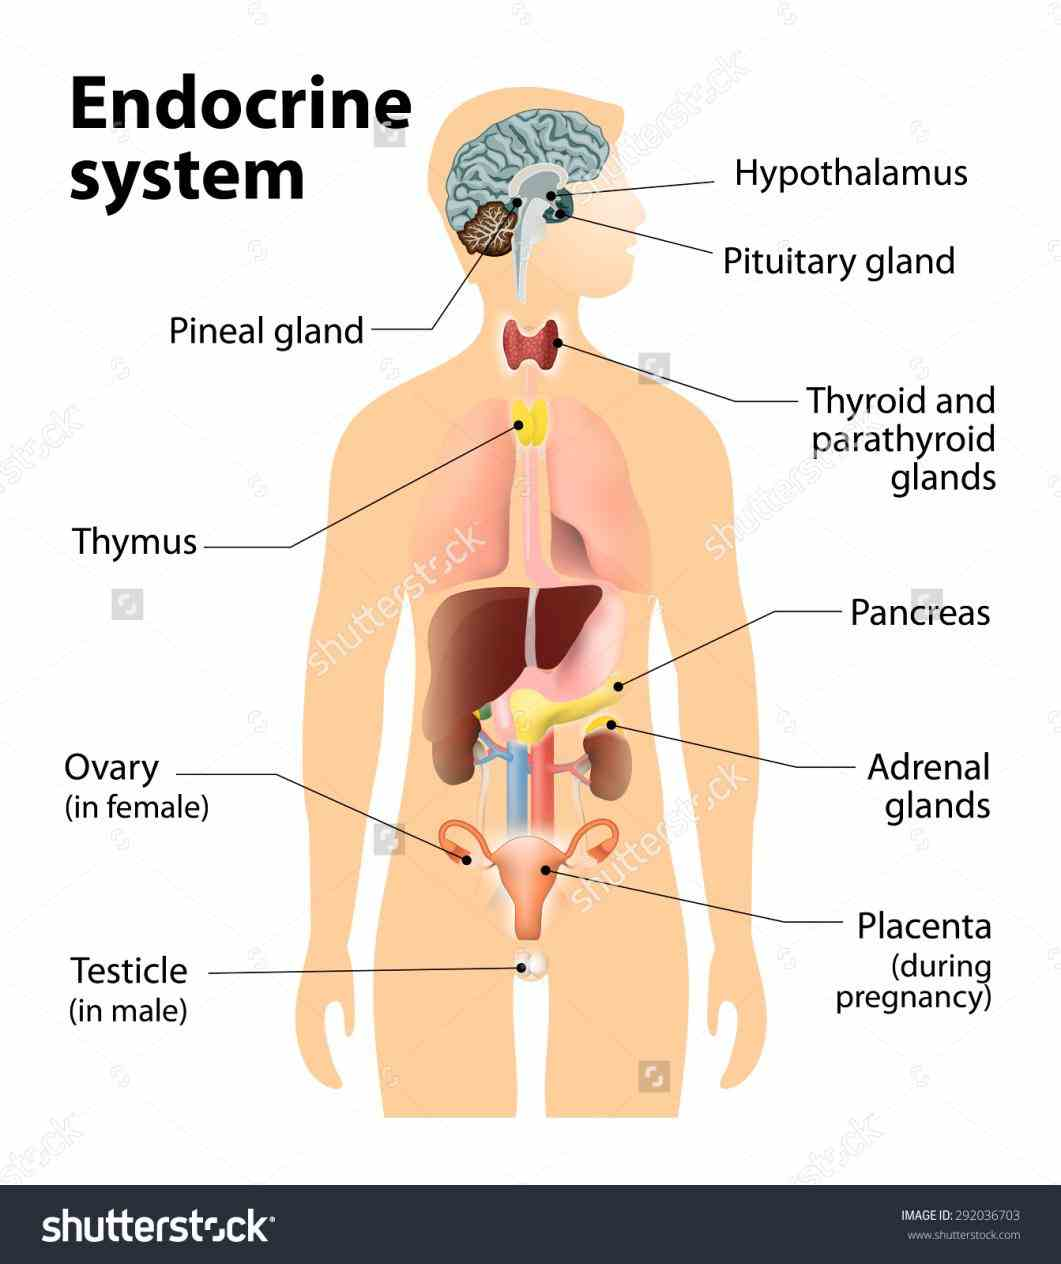 Endocrine System Organs And Their Functions Pictures Wallpapers